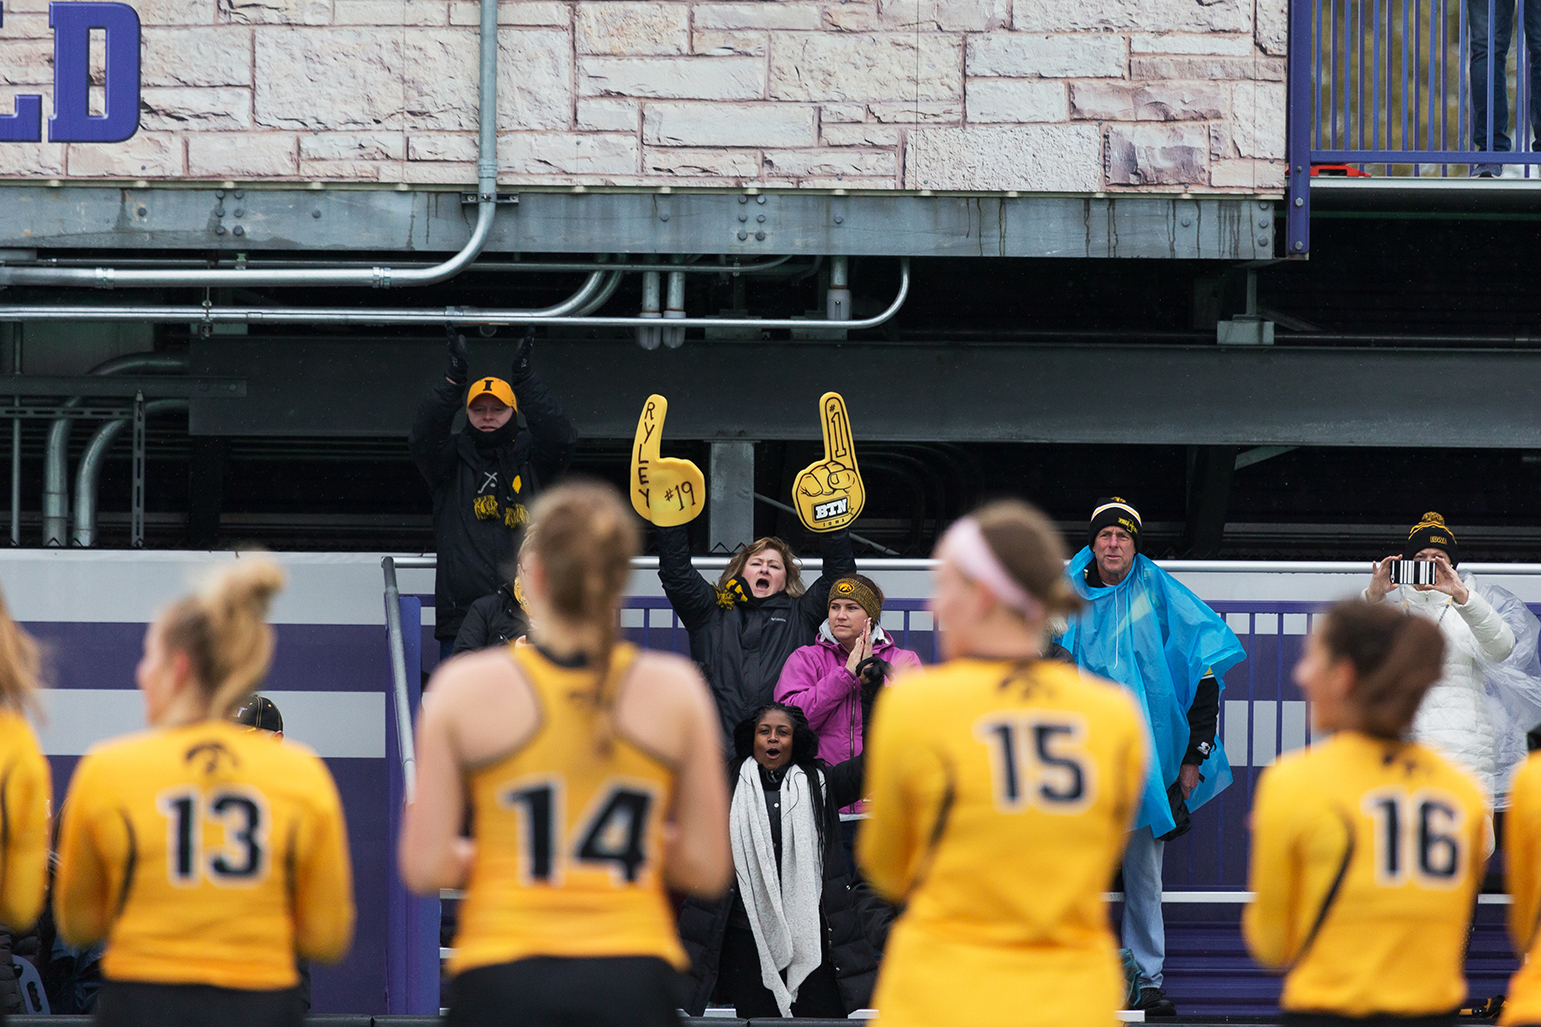 An Iowa fan cheers from the stands before the Championship Game in the Big Ten Field Hockey Tournament at Lakeside Field in Evanston, IL on Sunday, Nov. 3, 2018. The no. 2 ranked Terrapins defeated the no. 8 ranked Hawkeyes 2-1.